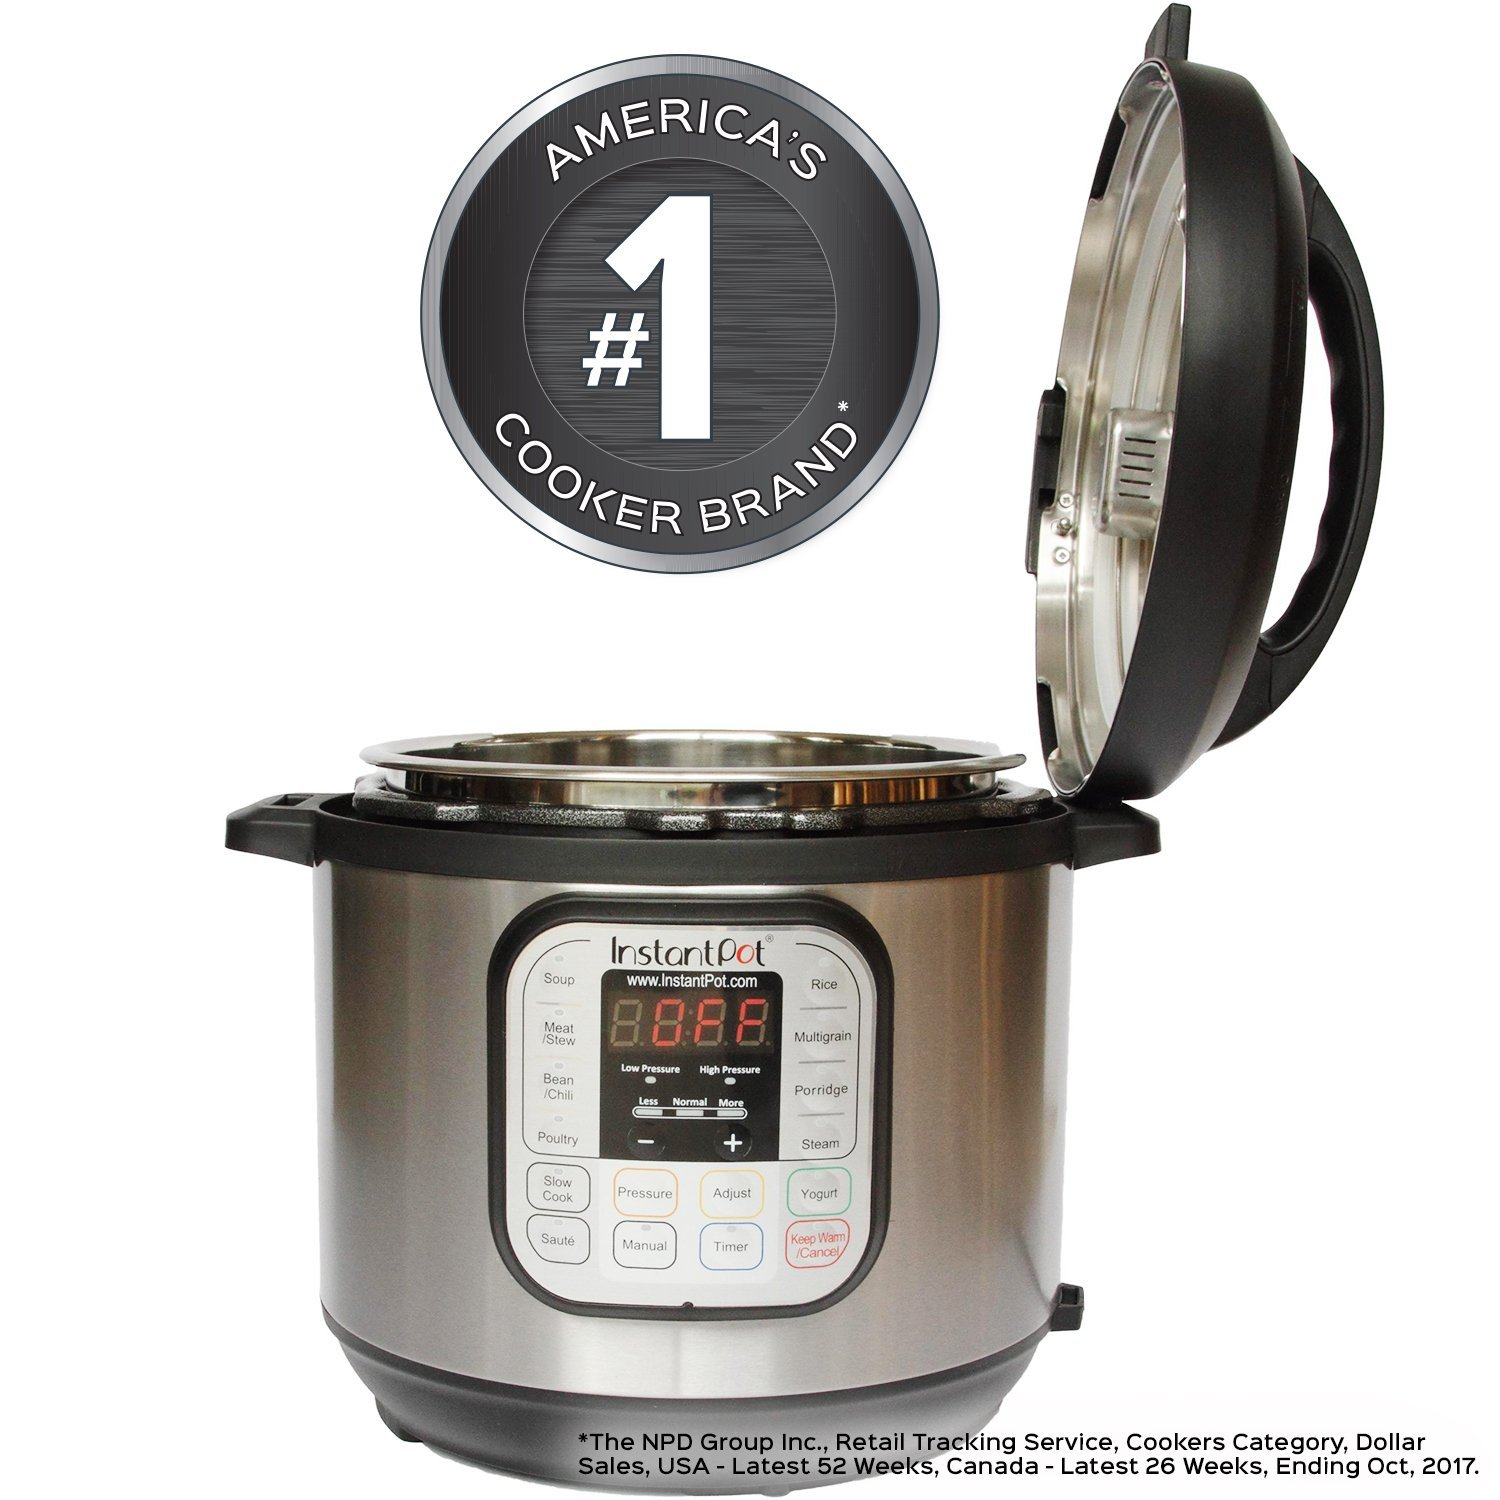 Instant Pot 8 Qt 7-in-1 Multi- Use Programmable Pressure Cooker, [ Pressure Cooker, Rice Cooker, Steamer, Saute, Yogurt Maker and Warmer, ... ] New!